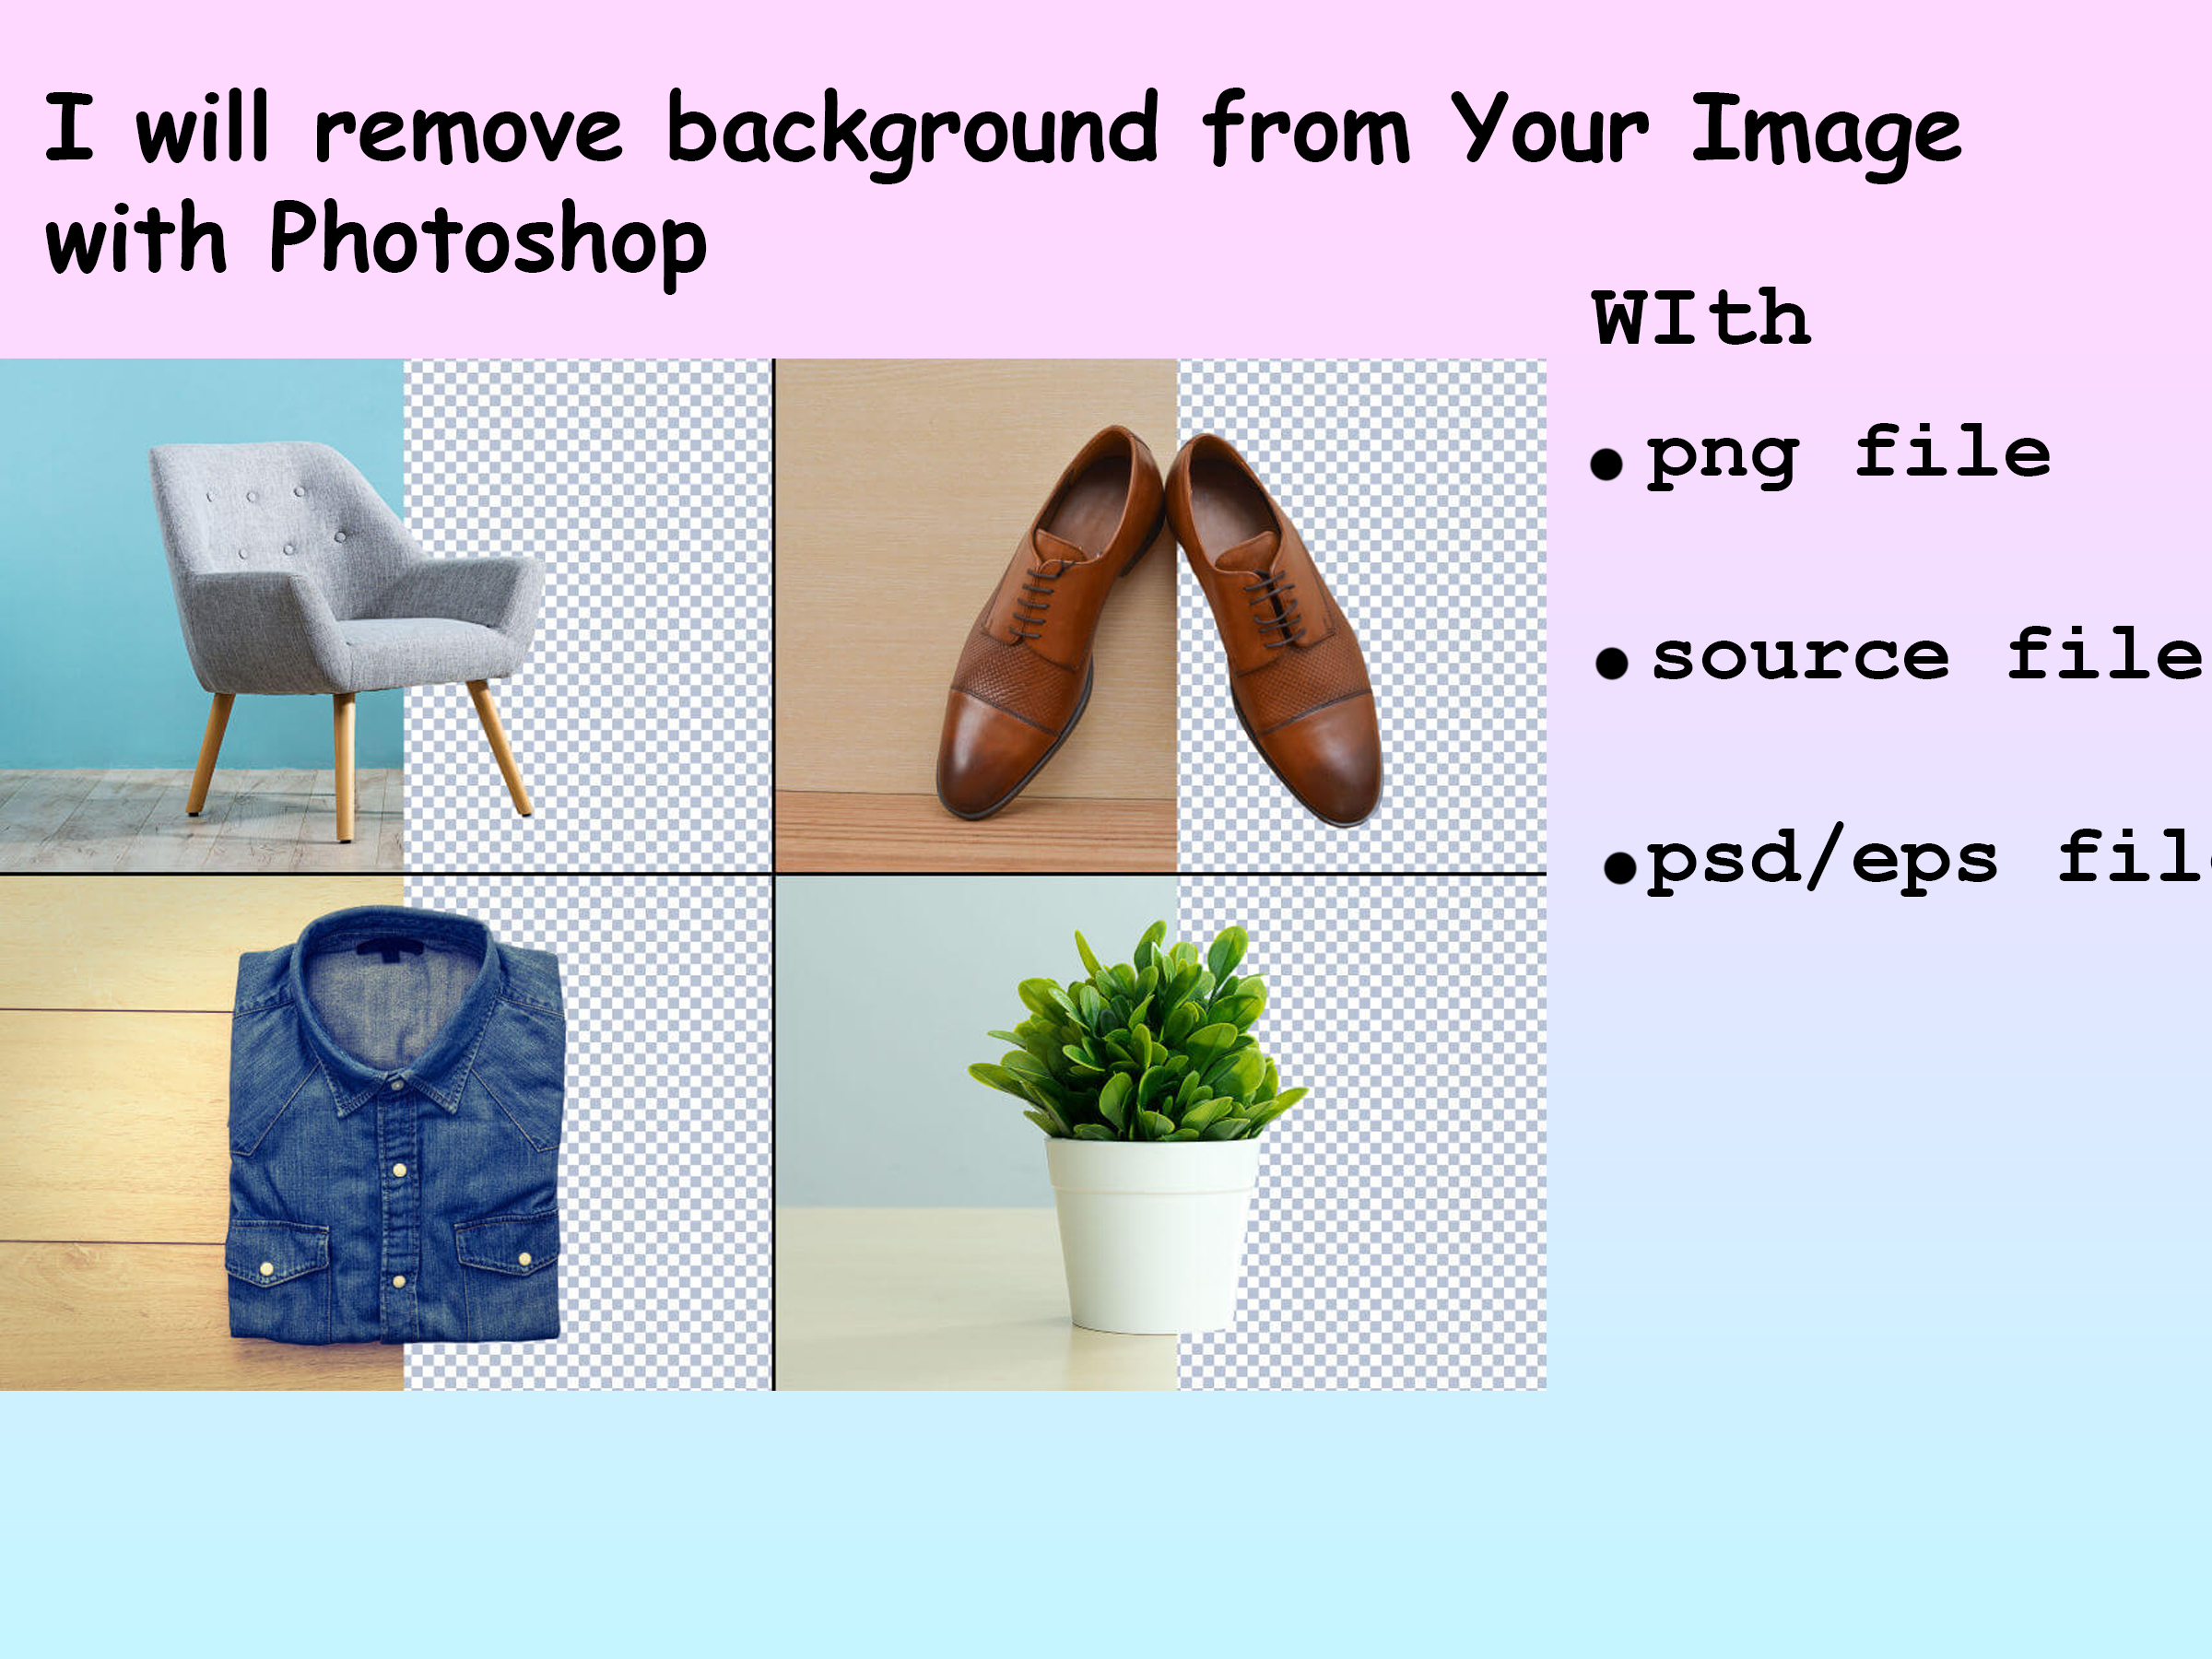 I will remove Background from your Image with Photoshop